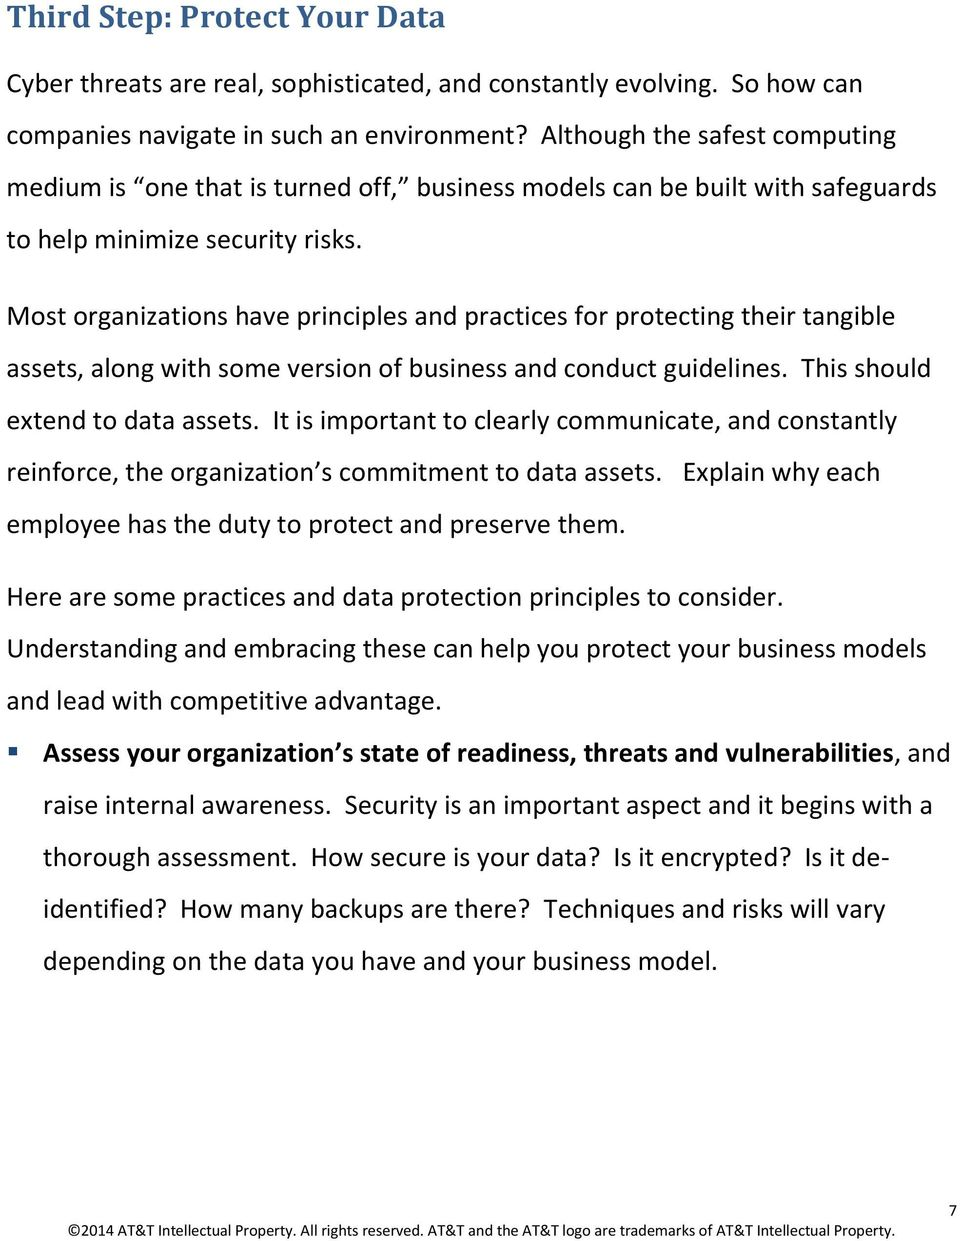 Most organizations have principles and practices for protecting their tangible assets, along with some version of business and conduct guidelines. This should extend to data assets.